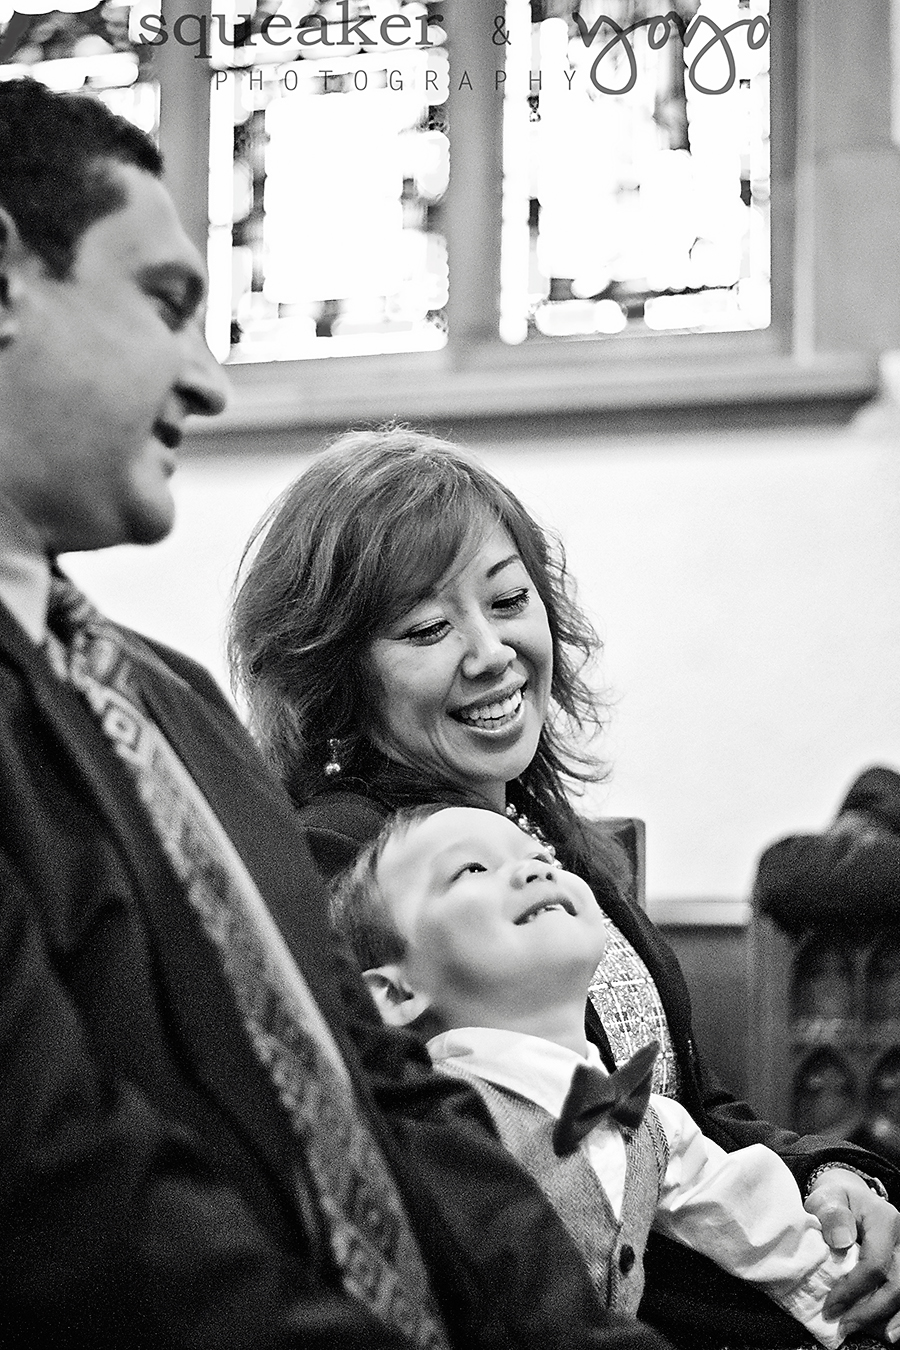 Toronto GTA Baptism Photography